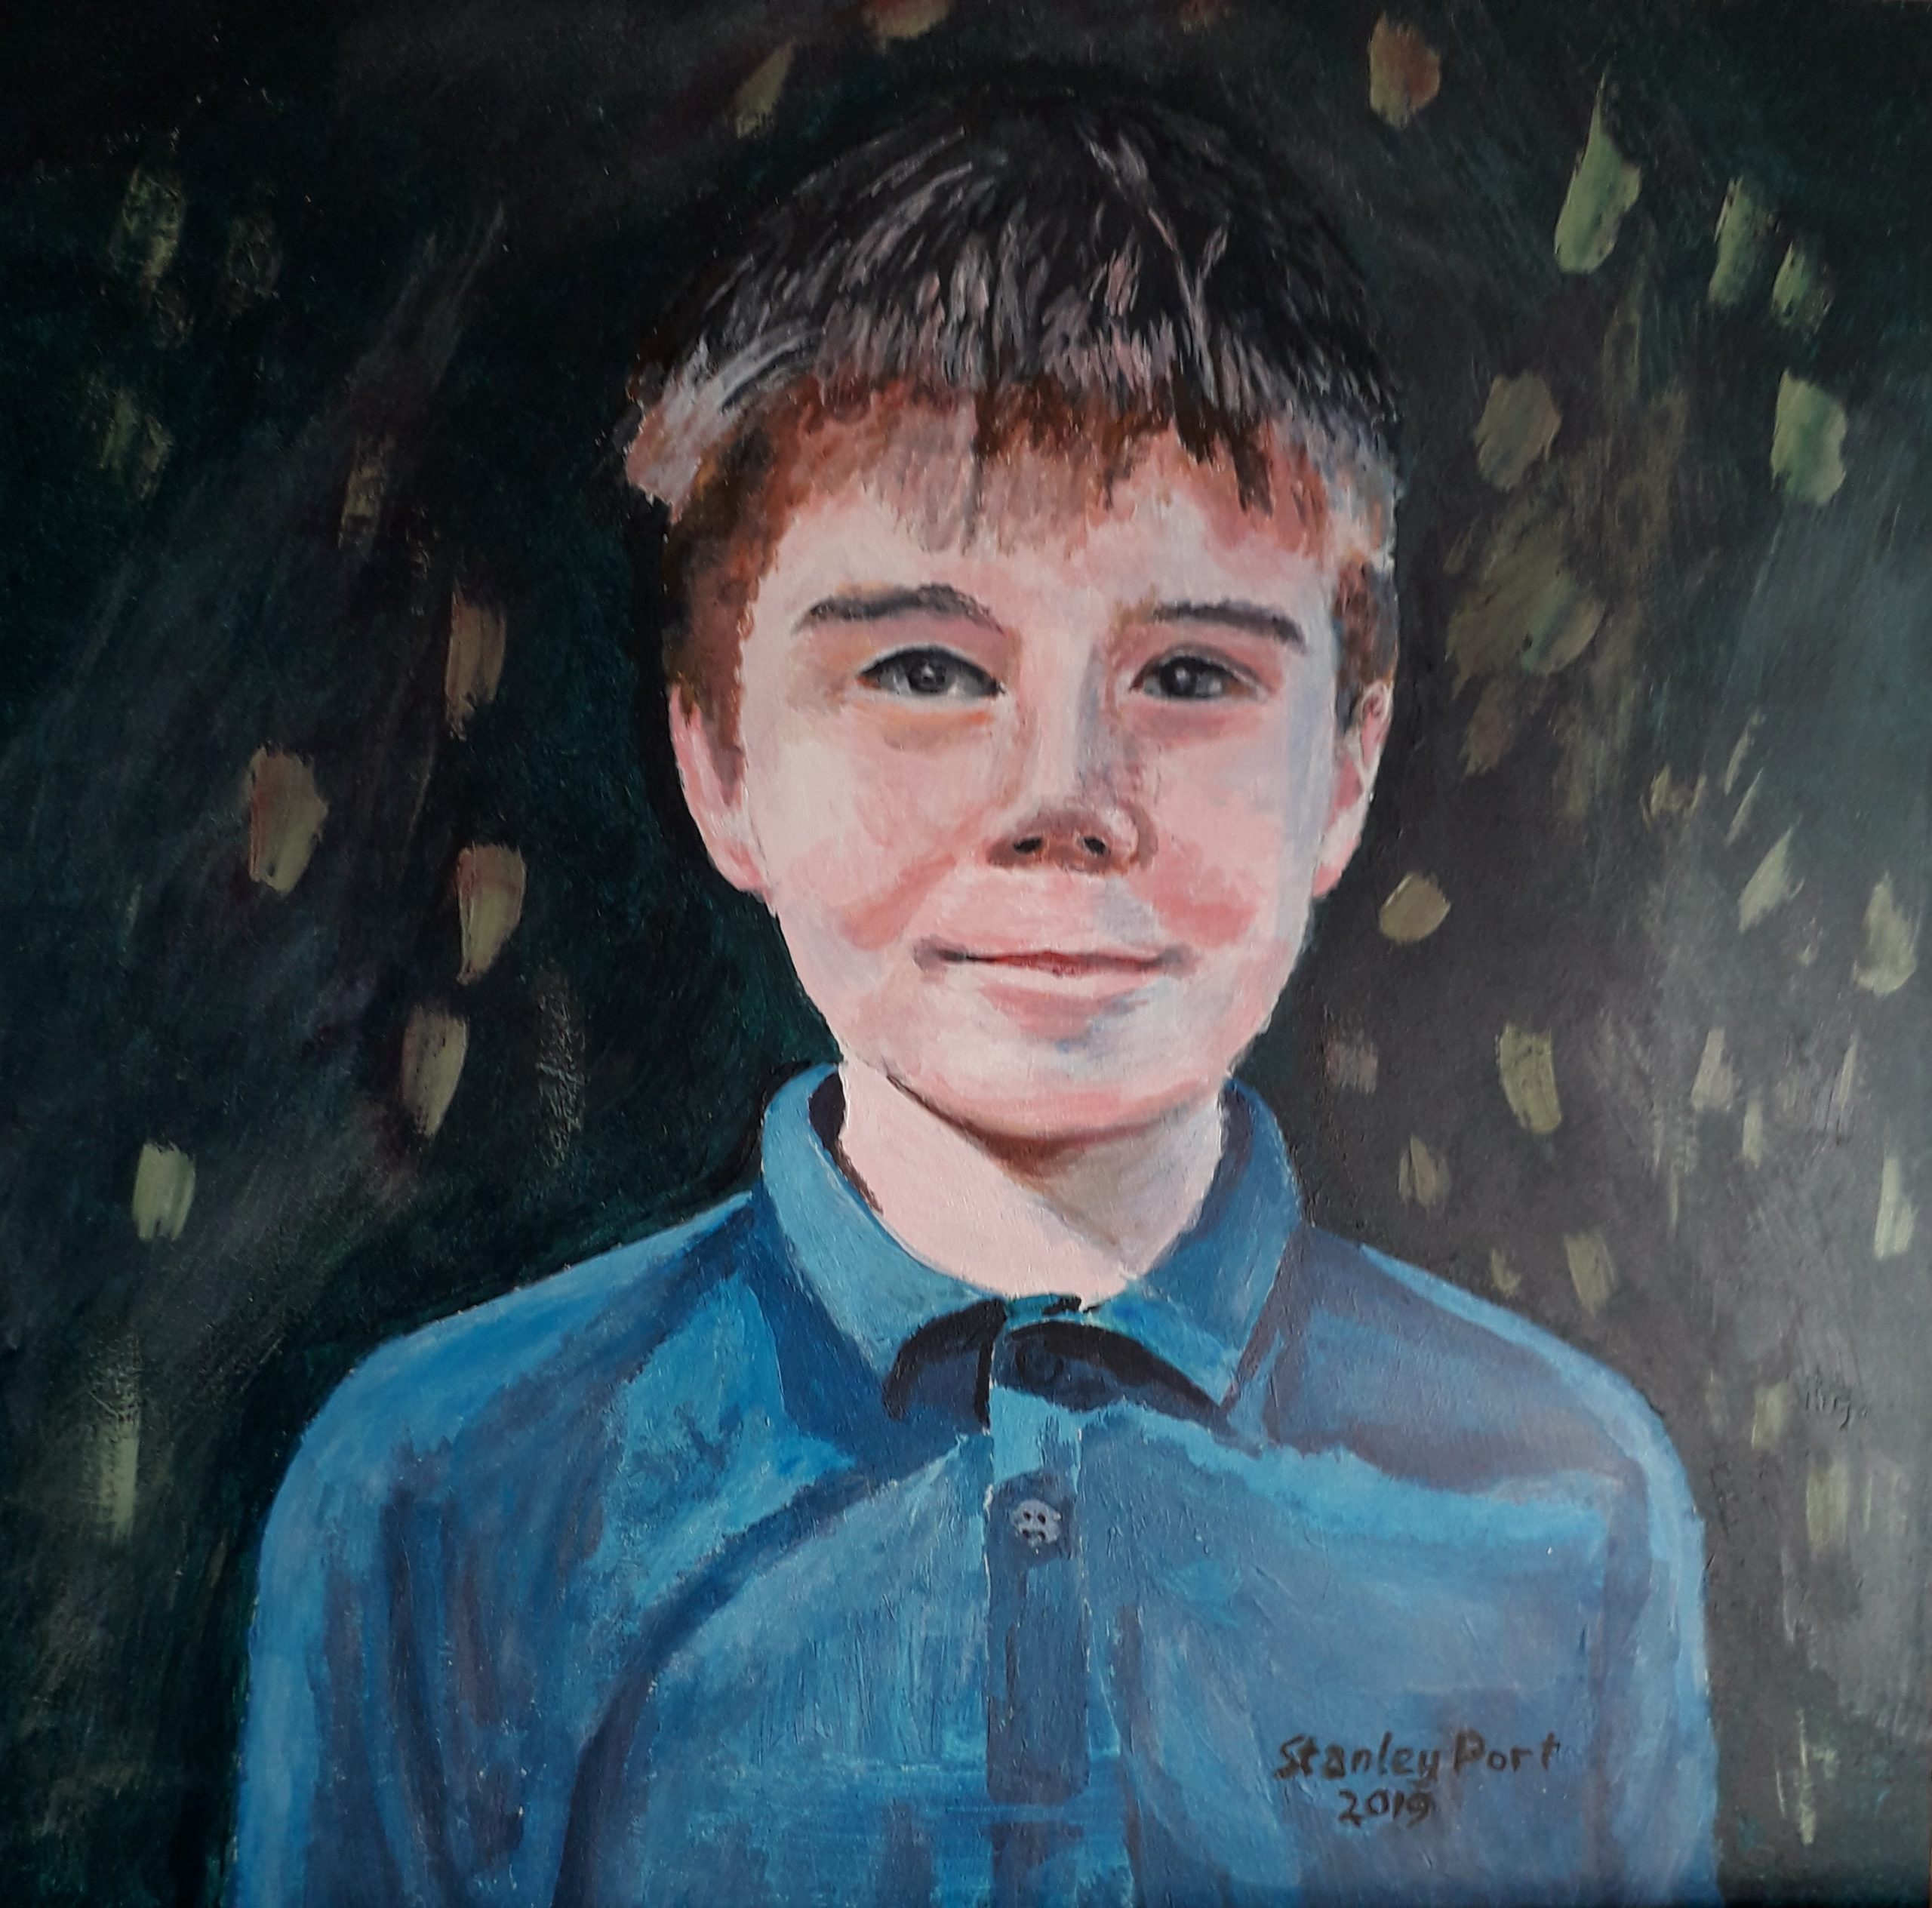 Commissions for Portraits